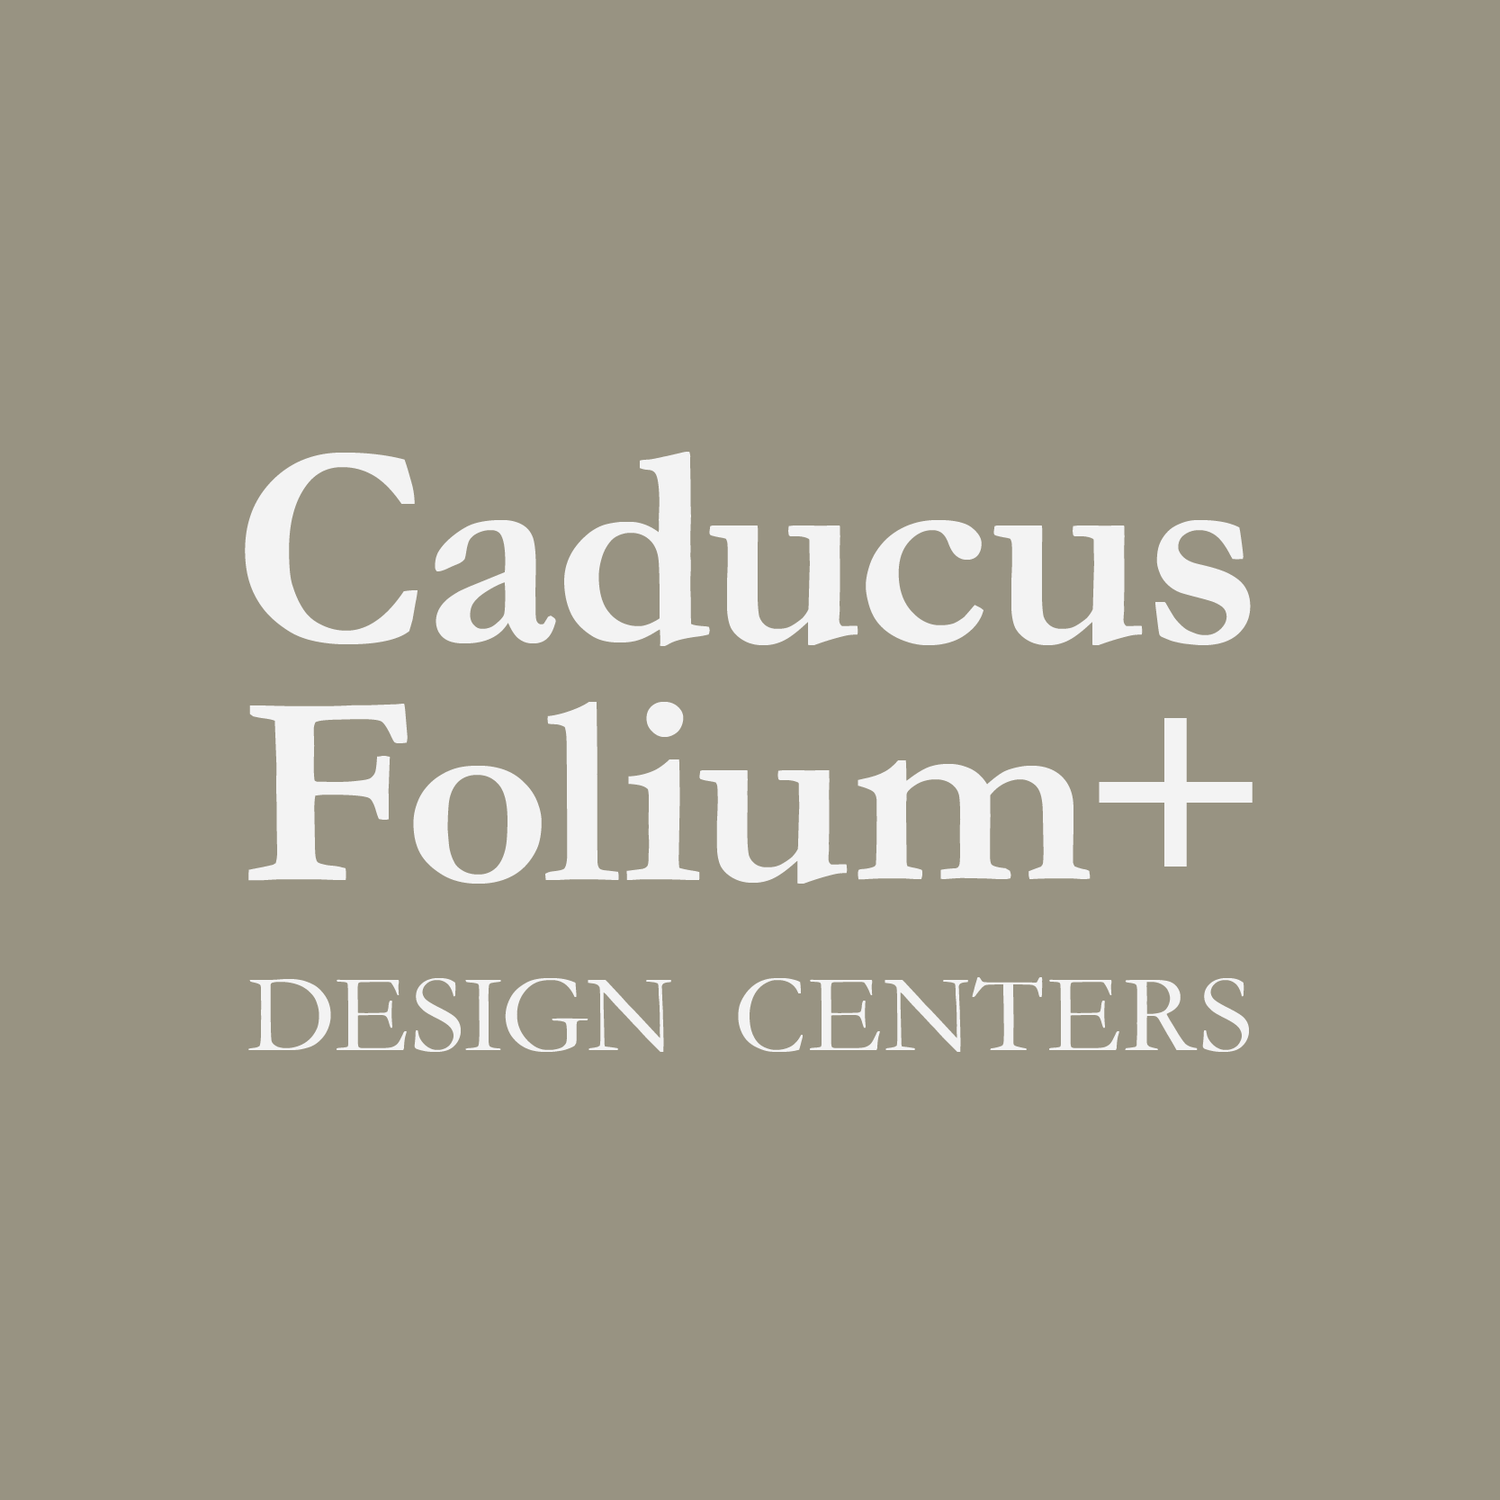 Caducus Folium+ Design Centers: Luxury Furnishings & Designer Accessories